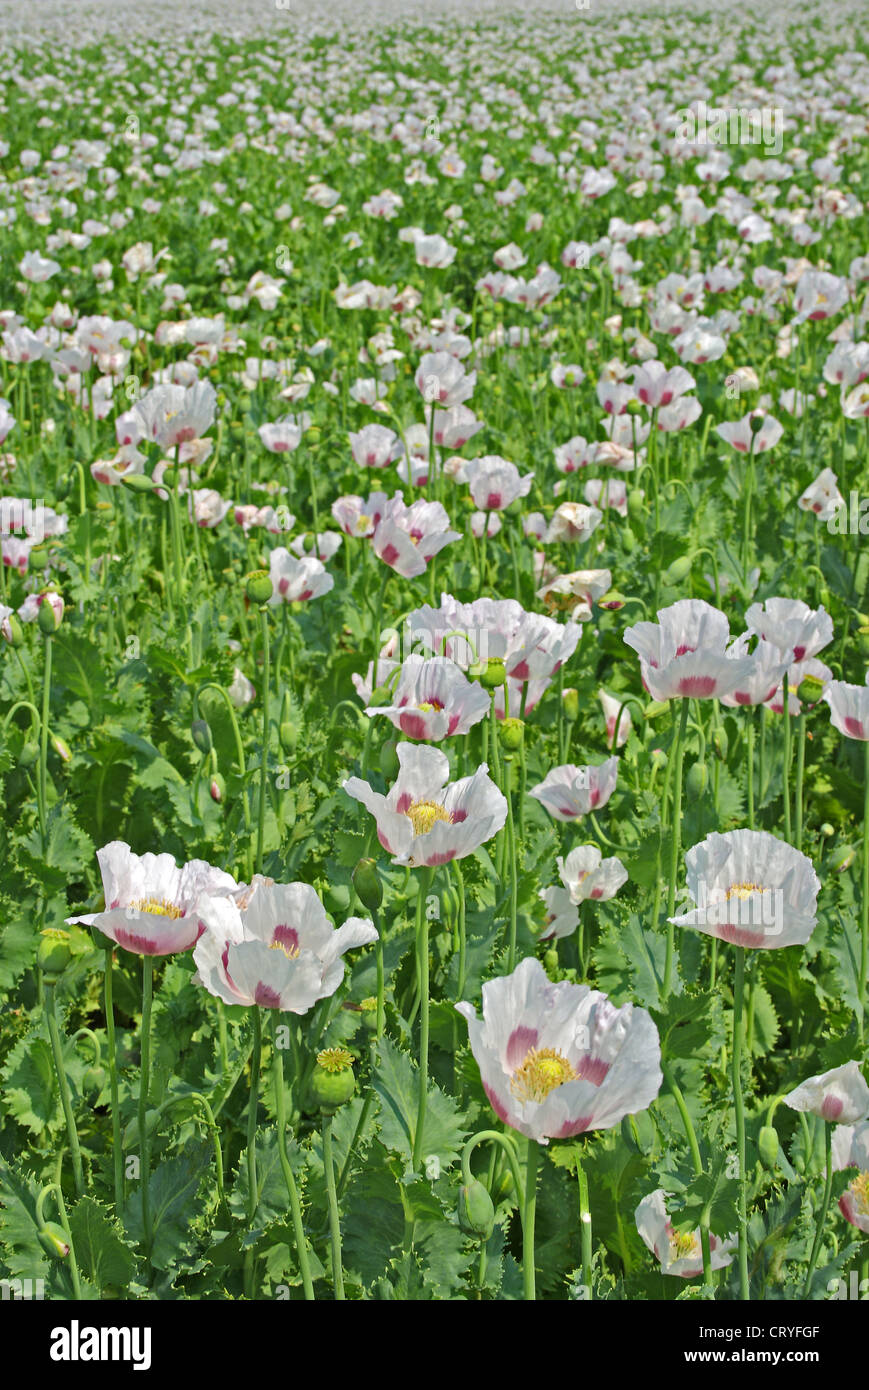 field of a genuine poppy flowers - Stock Image